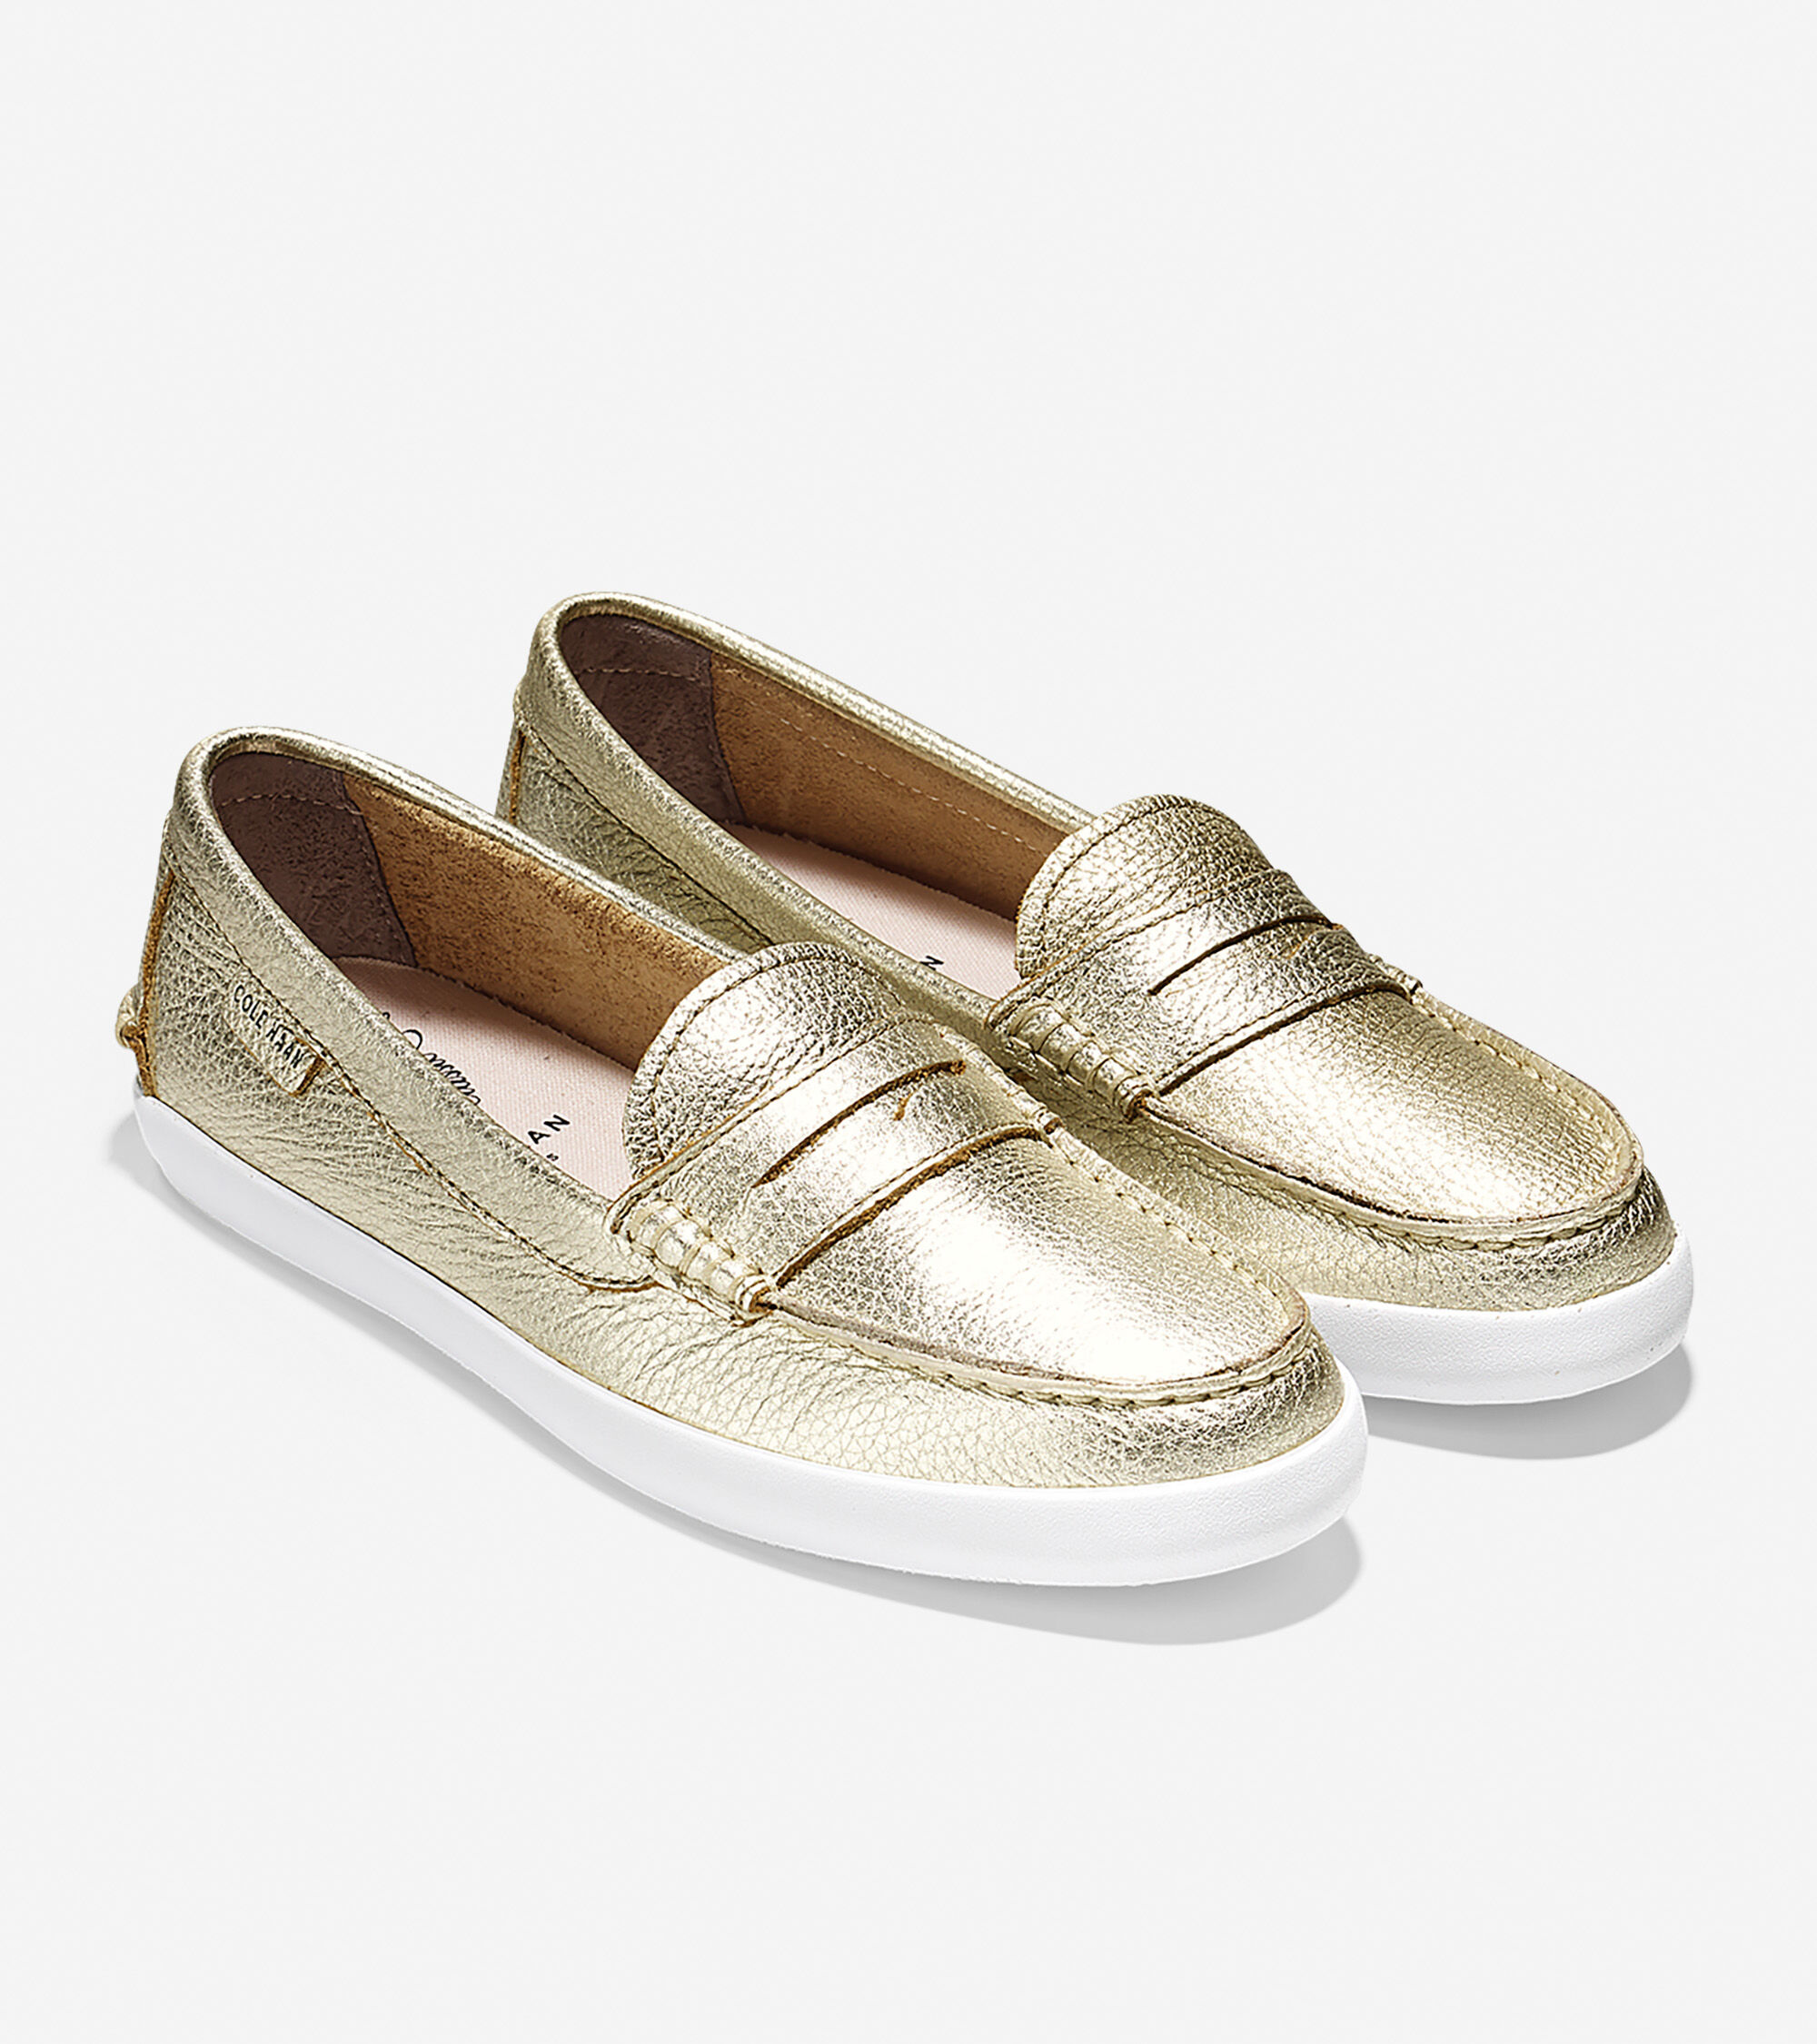 Pinch Leather Weekenders in Soft Gold Metallic